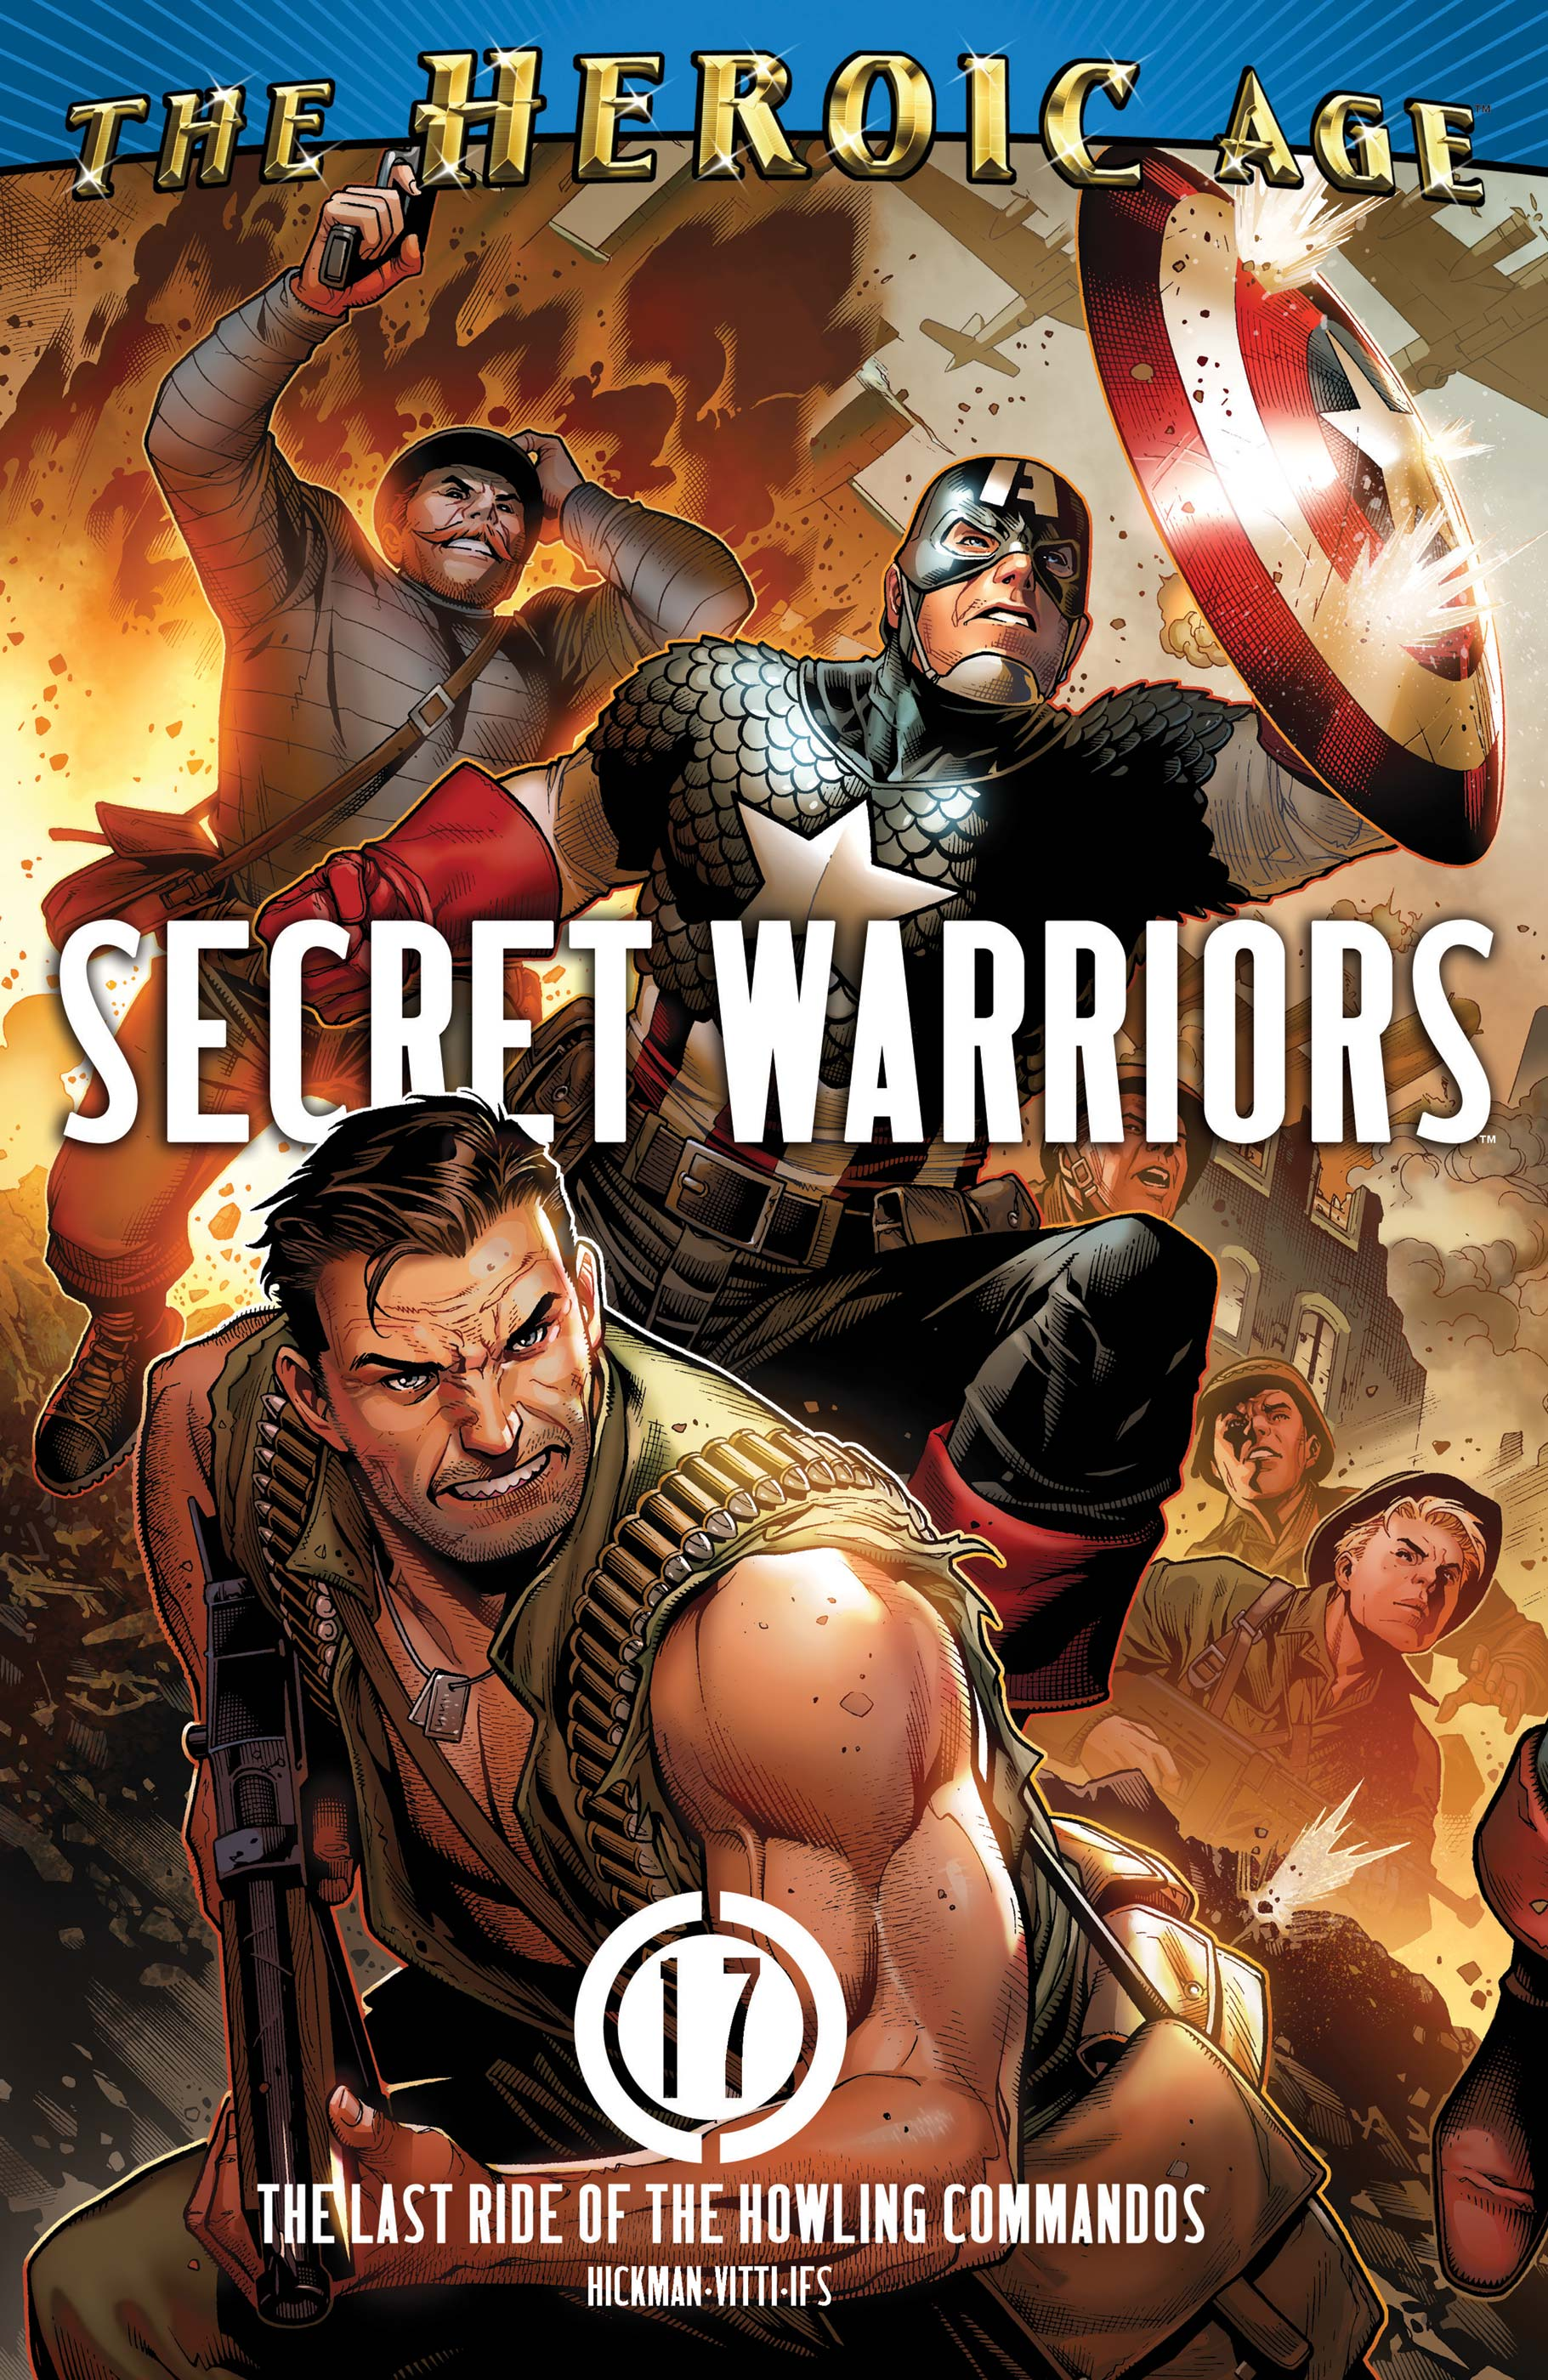 Secret Warriors (2009) #17